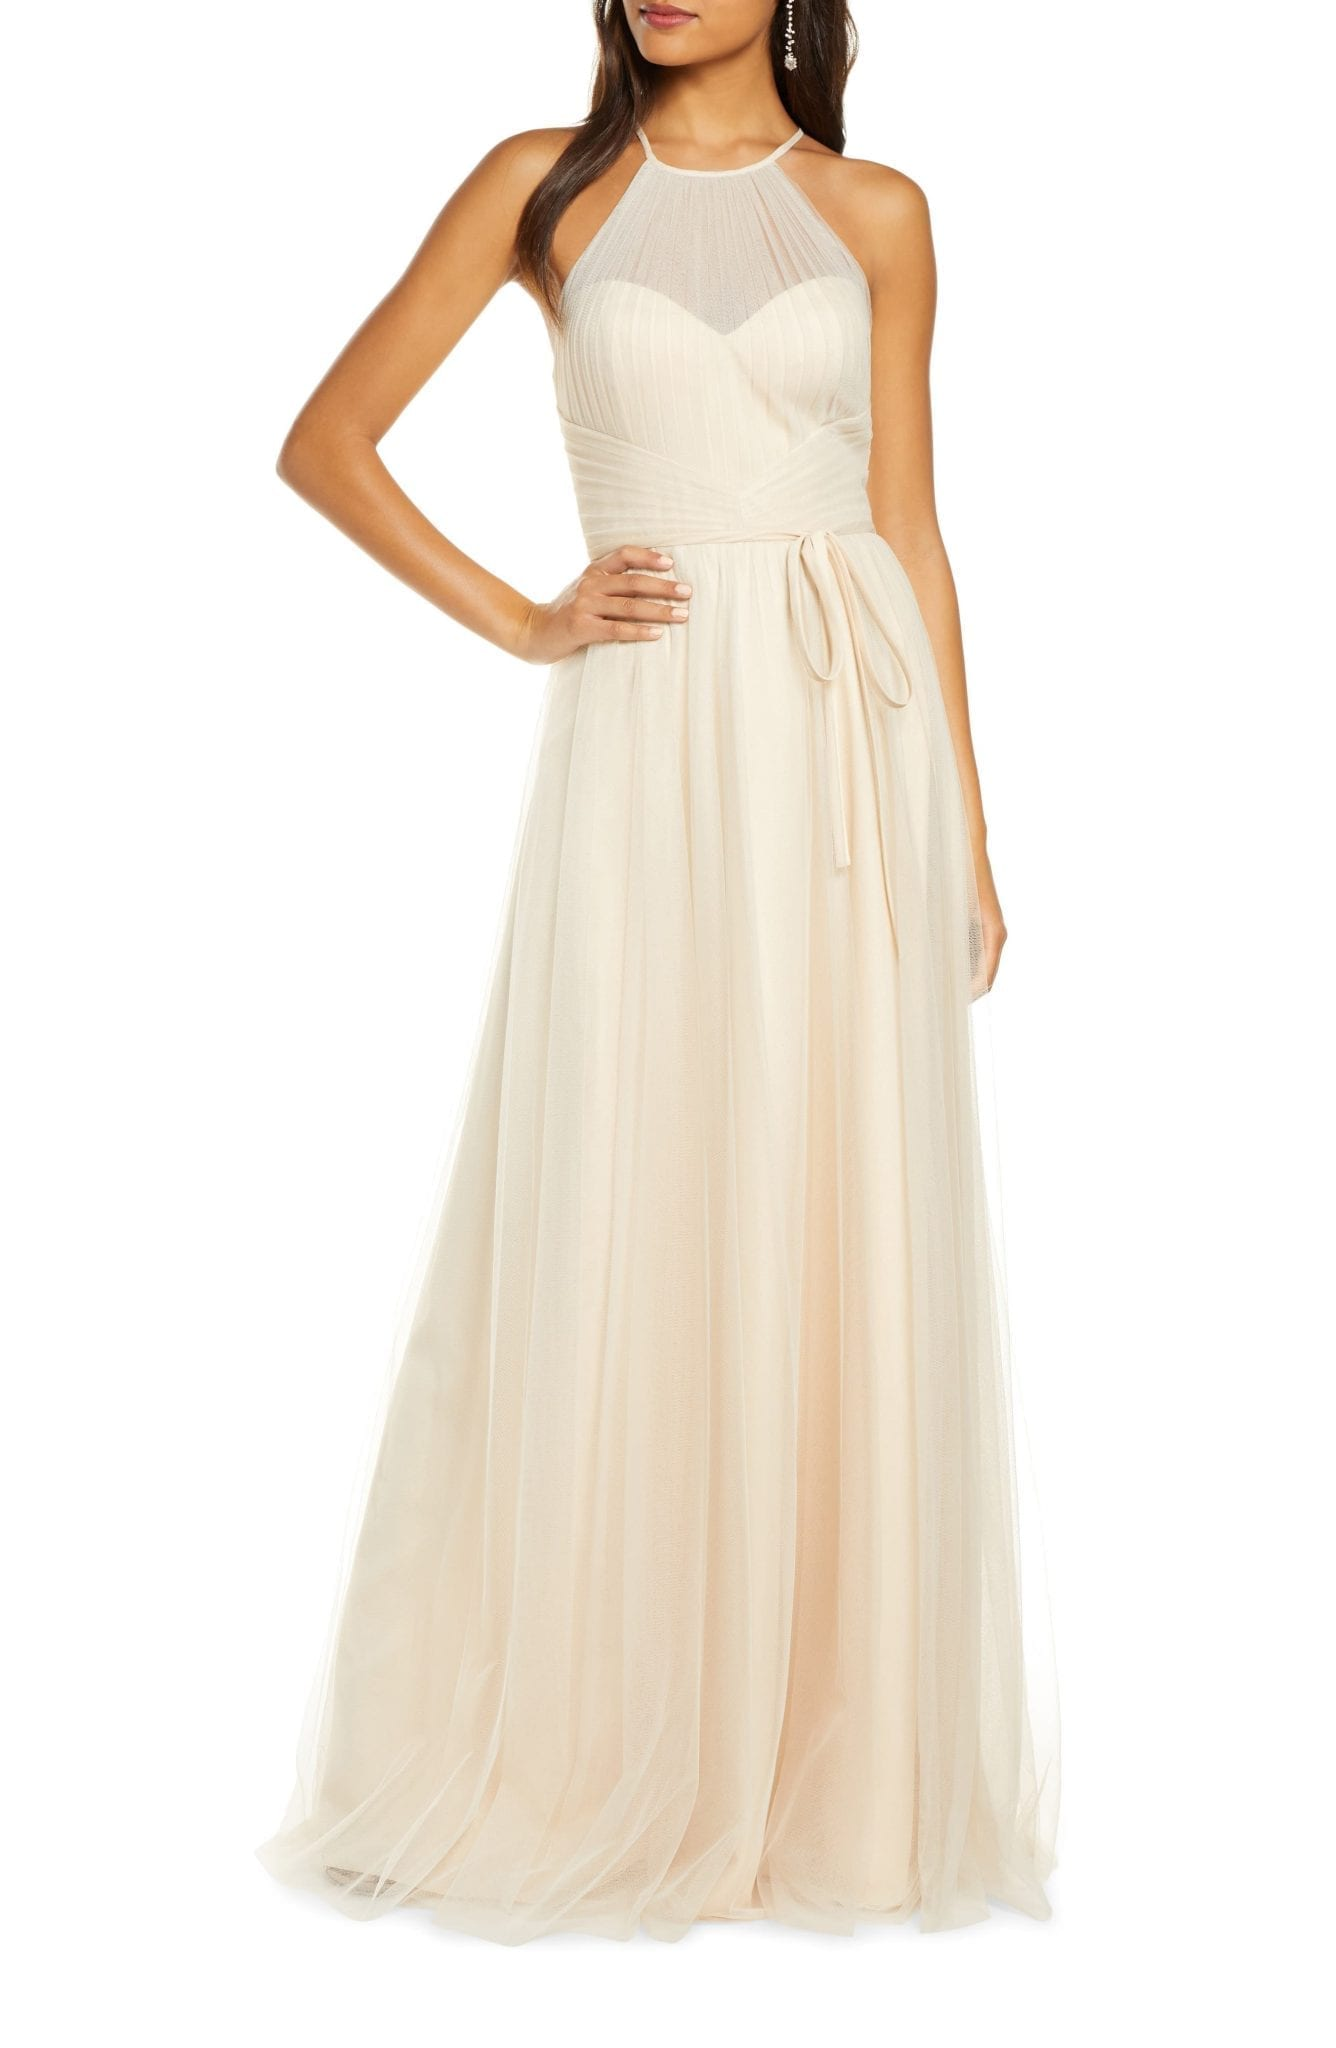 MARCHESA NOTTE Halter Tulle Bridesmaid Gown